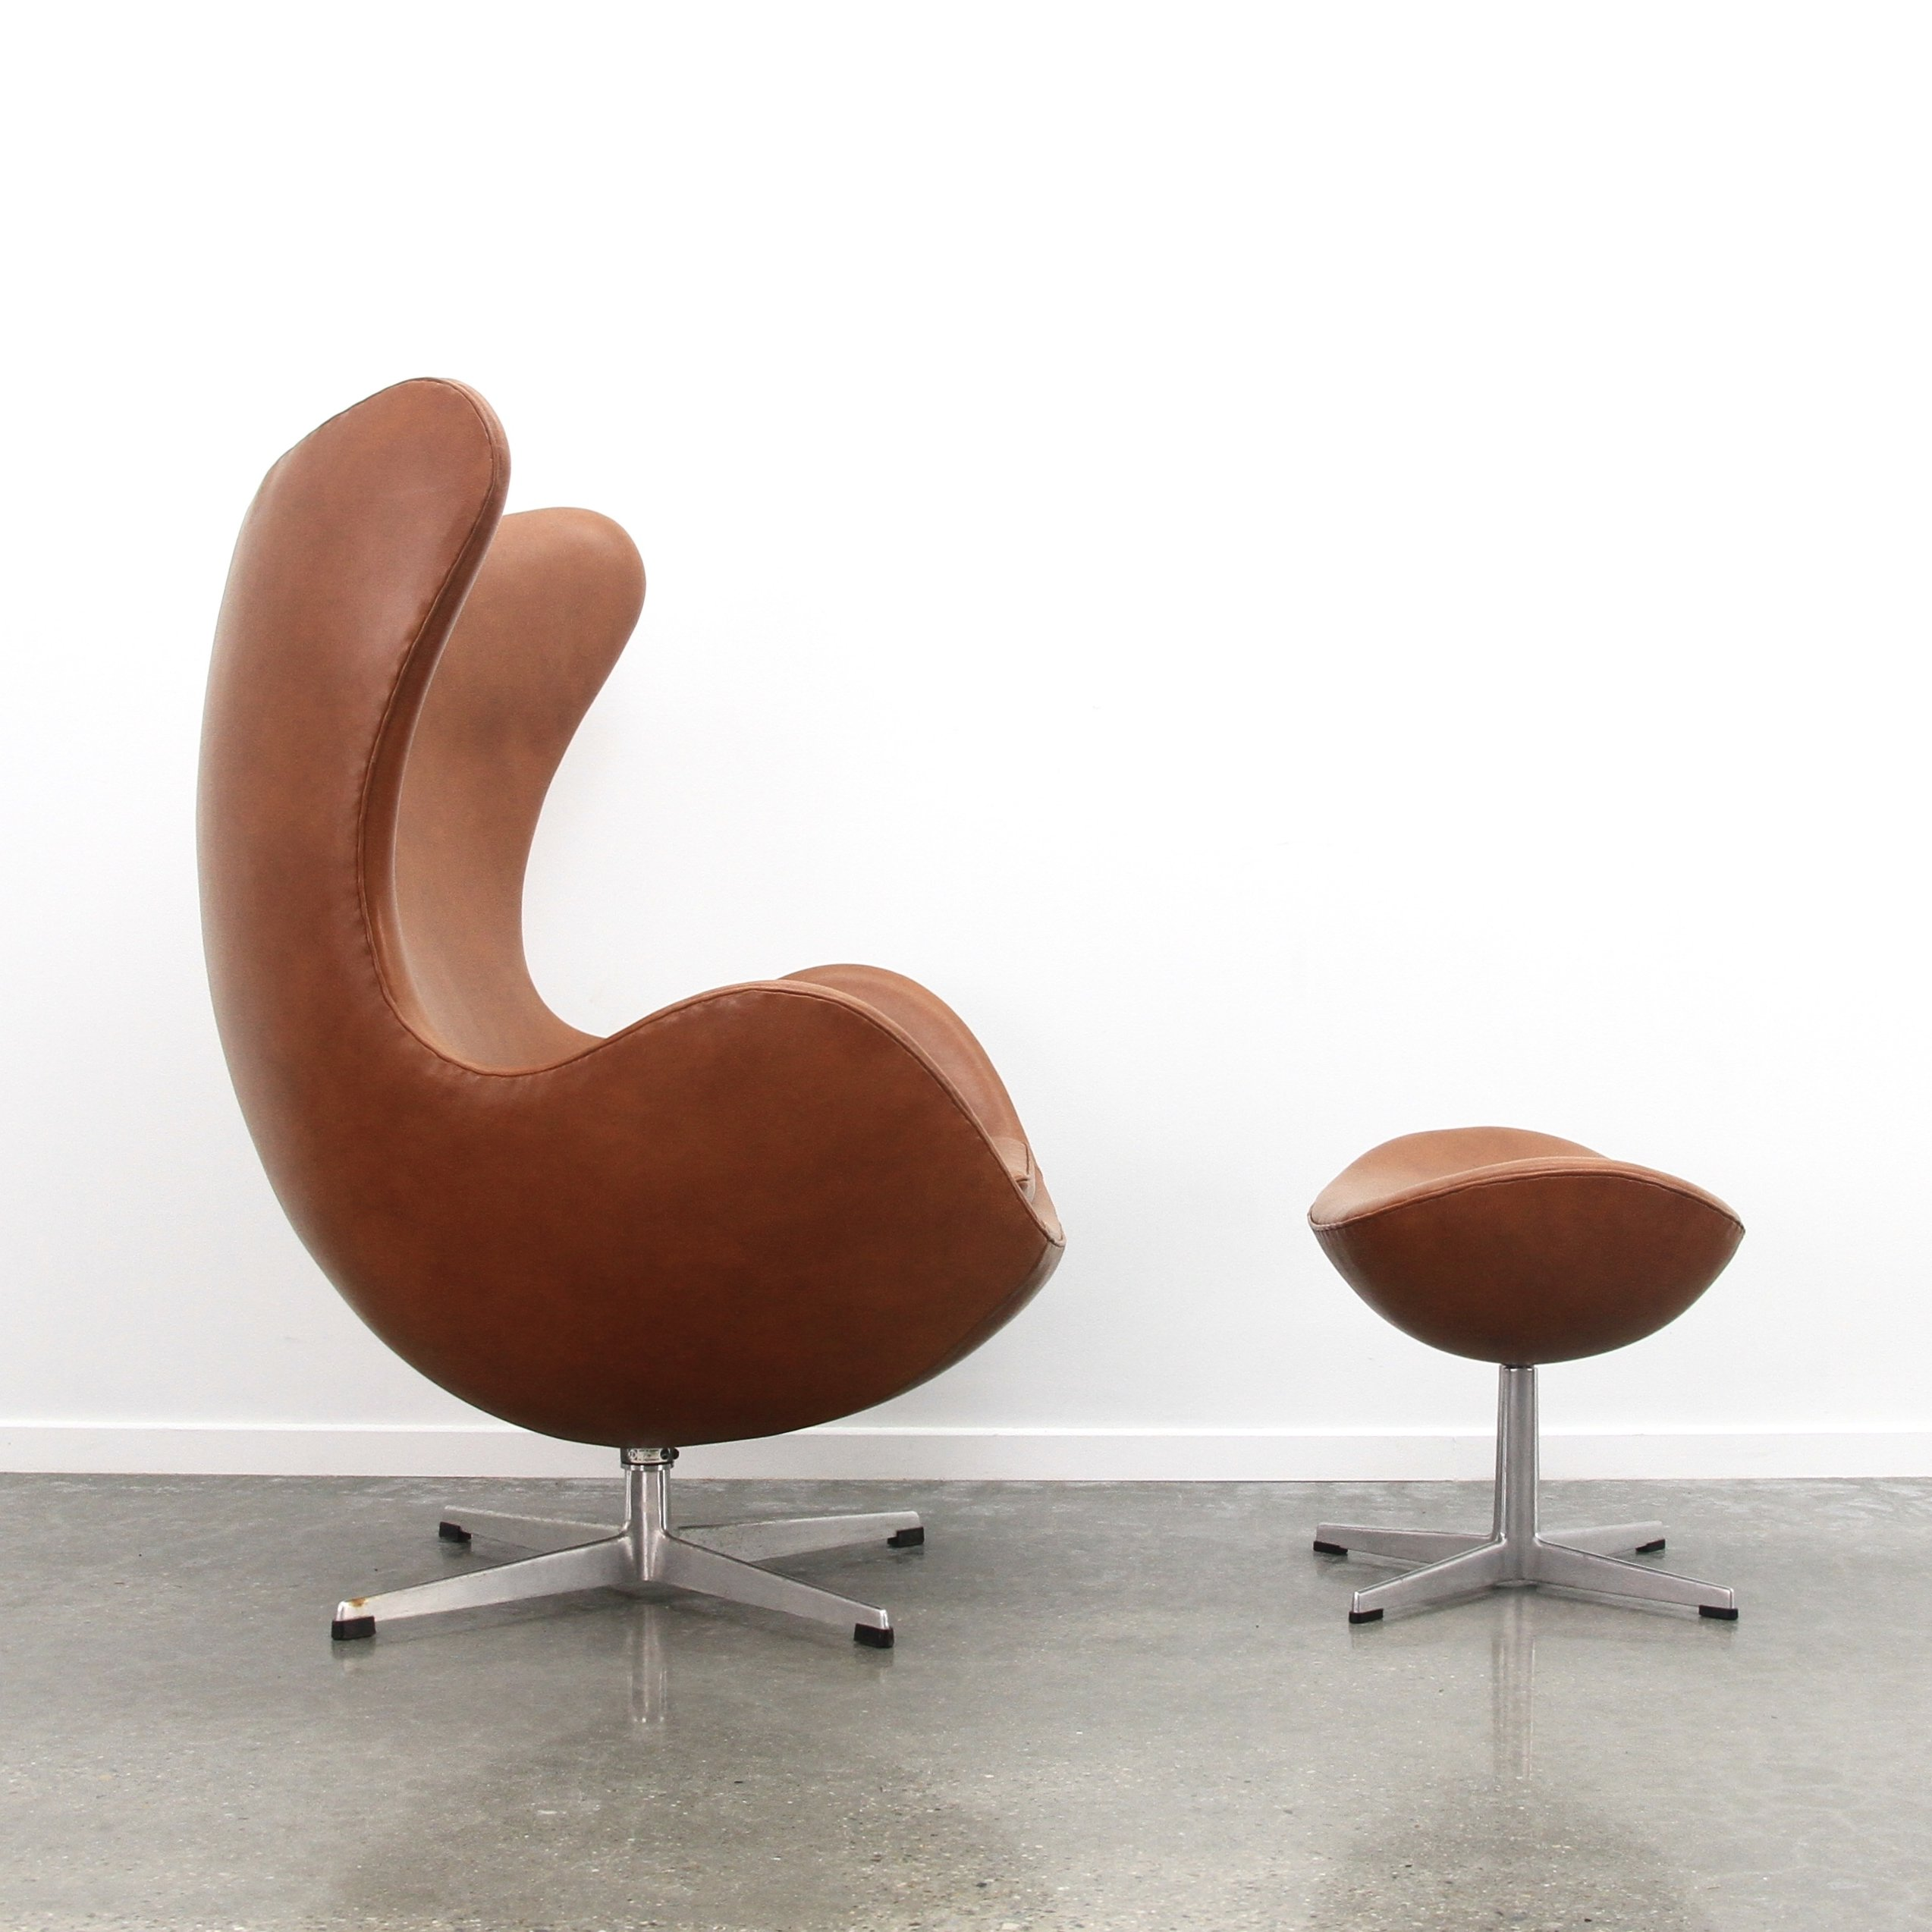 Pouf Design Egg Pouf Jacobsen : Arne jacobsen egg chair ottoman in cognac leather